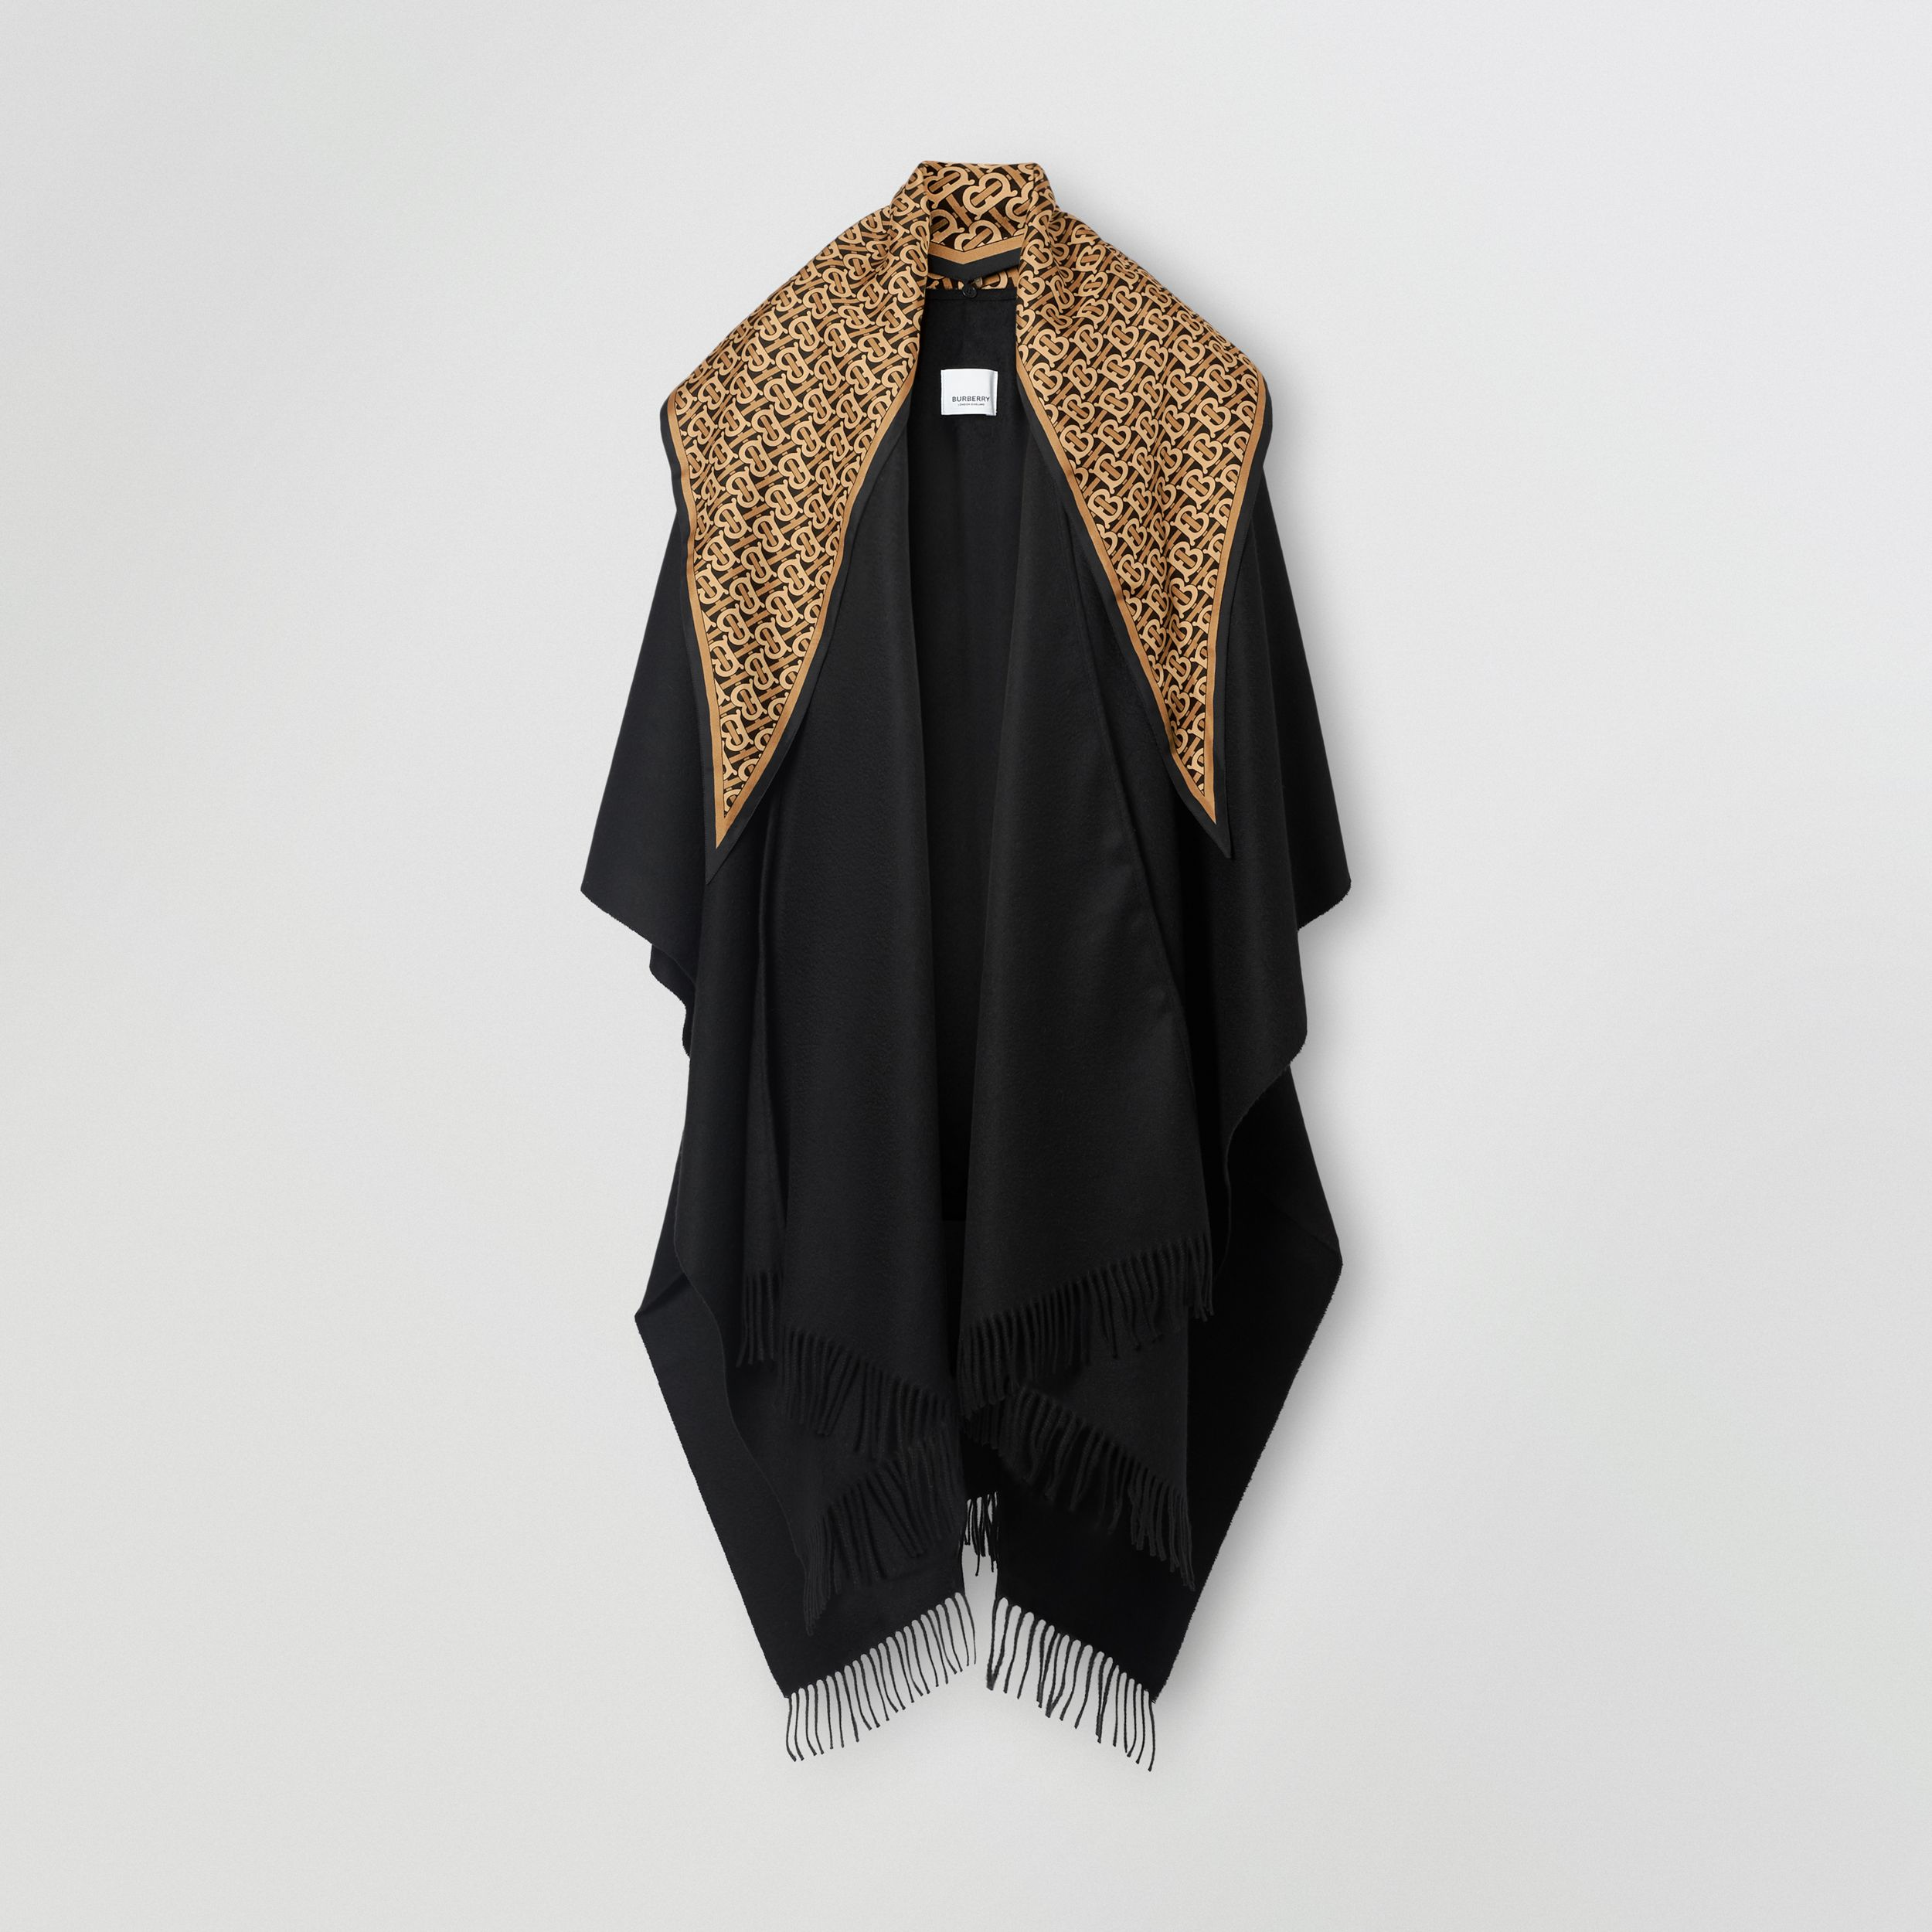 Detachable Monogram Print Scarf Cashmere Cape in Black - Women | Burberry - 4